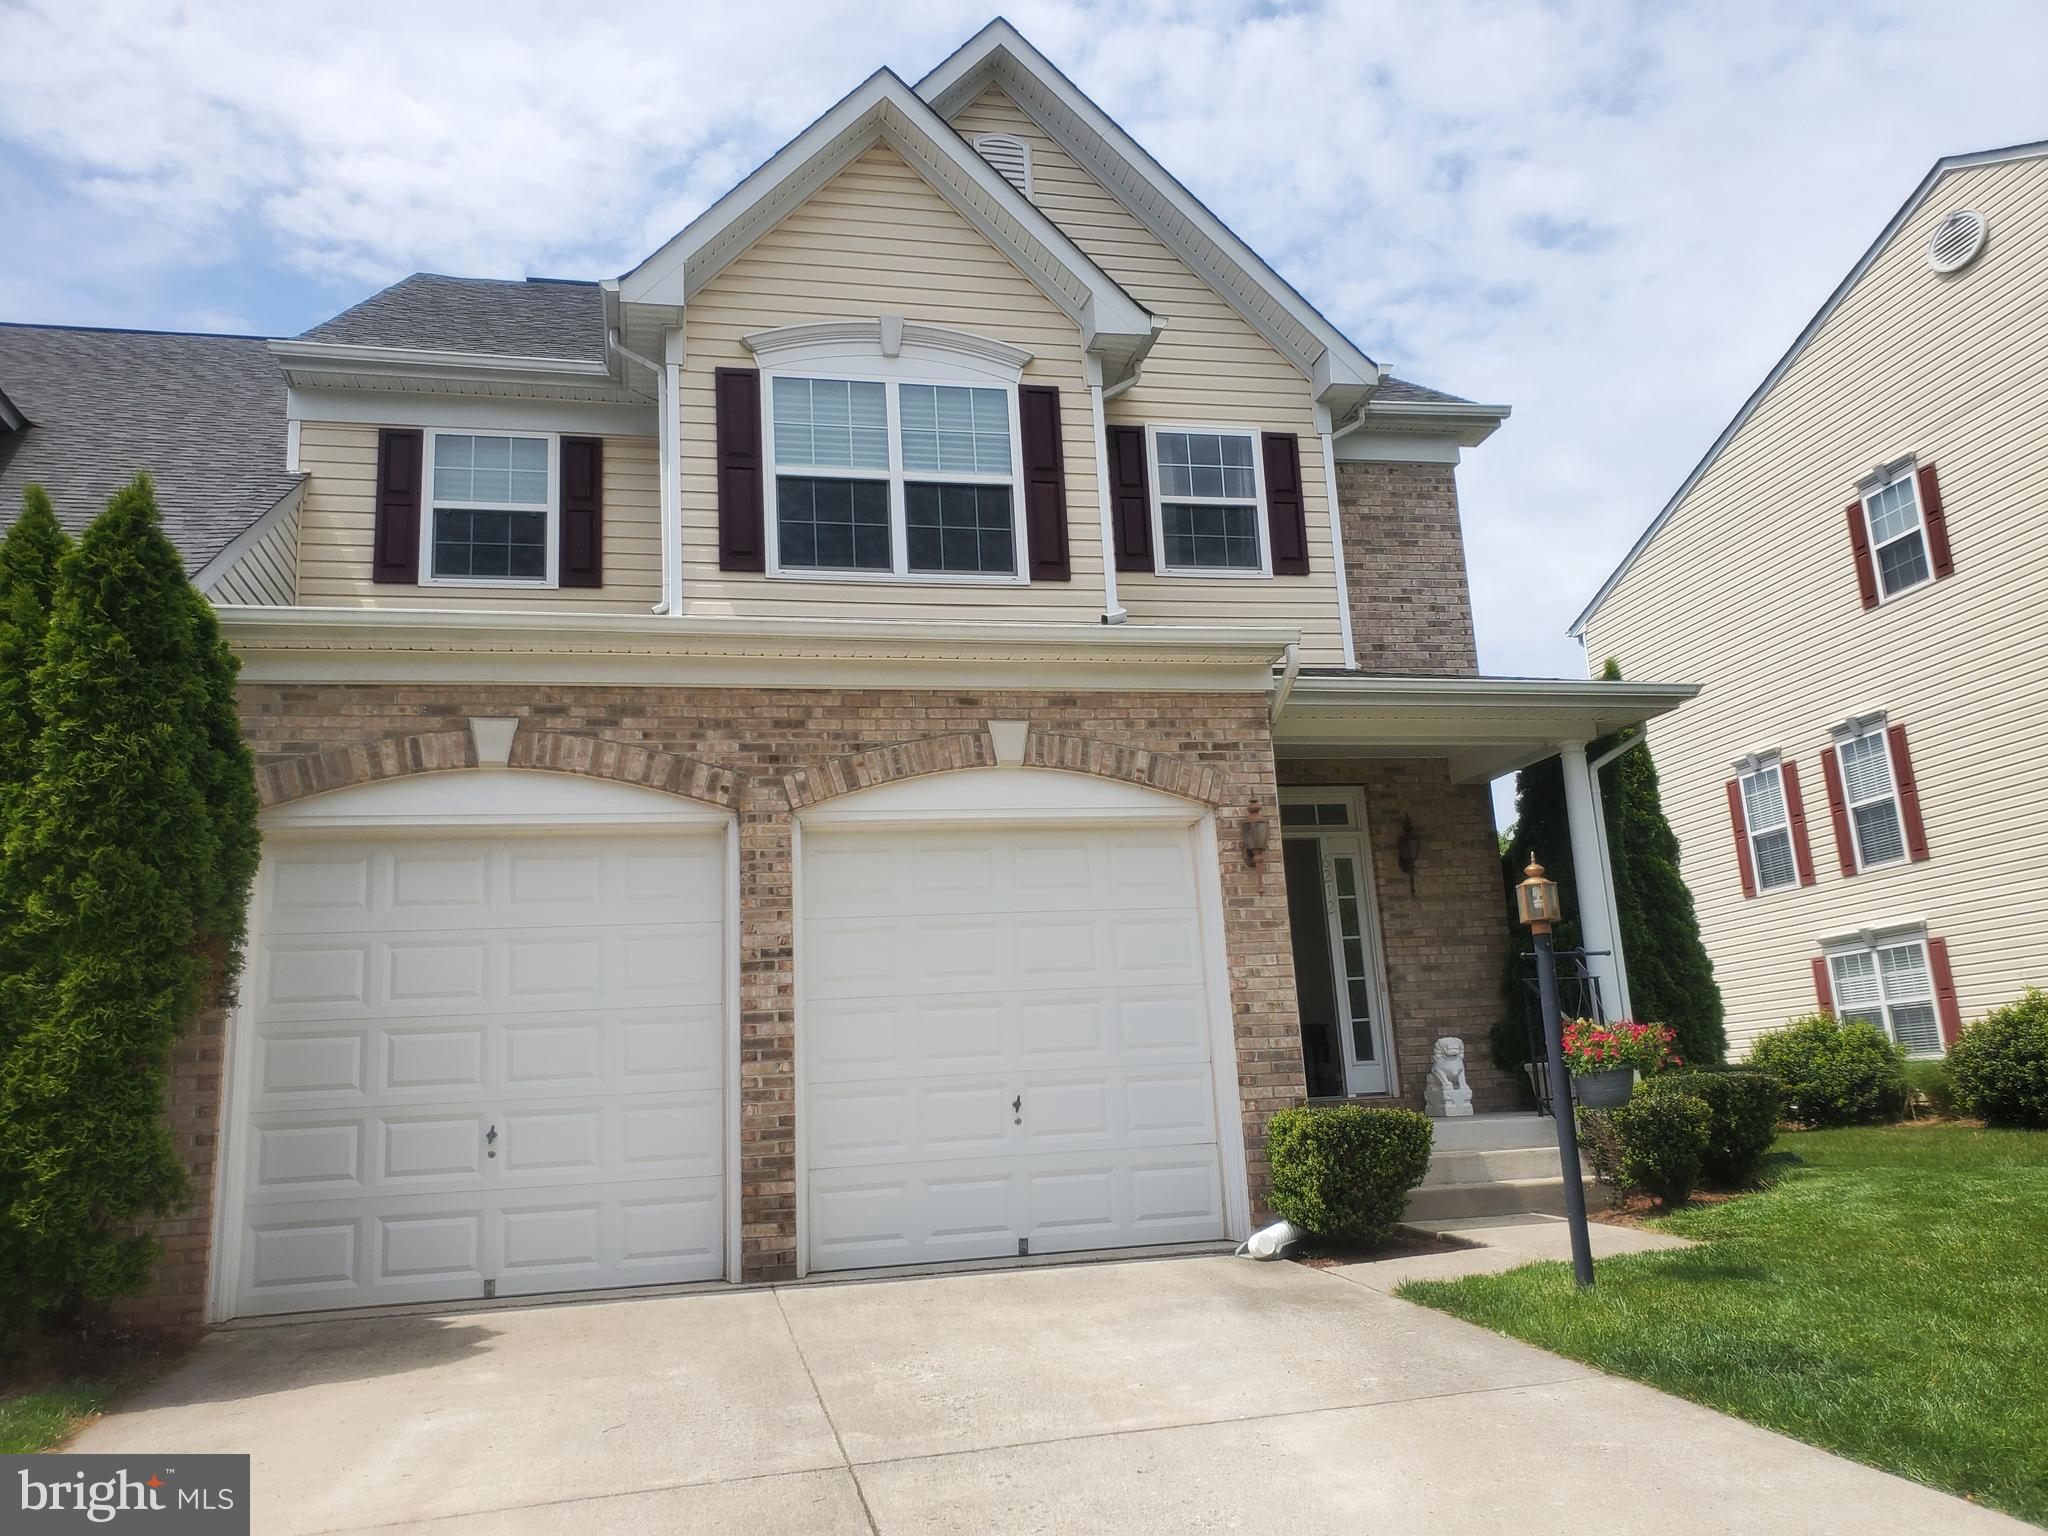 Welcome to this lovely, private, well maintain bright End Unit Town Home with 4 bedrooms, 2.5 baths